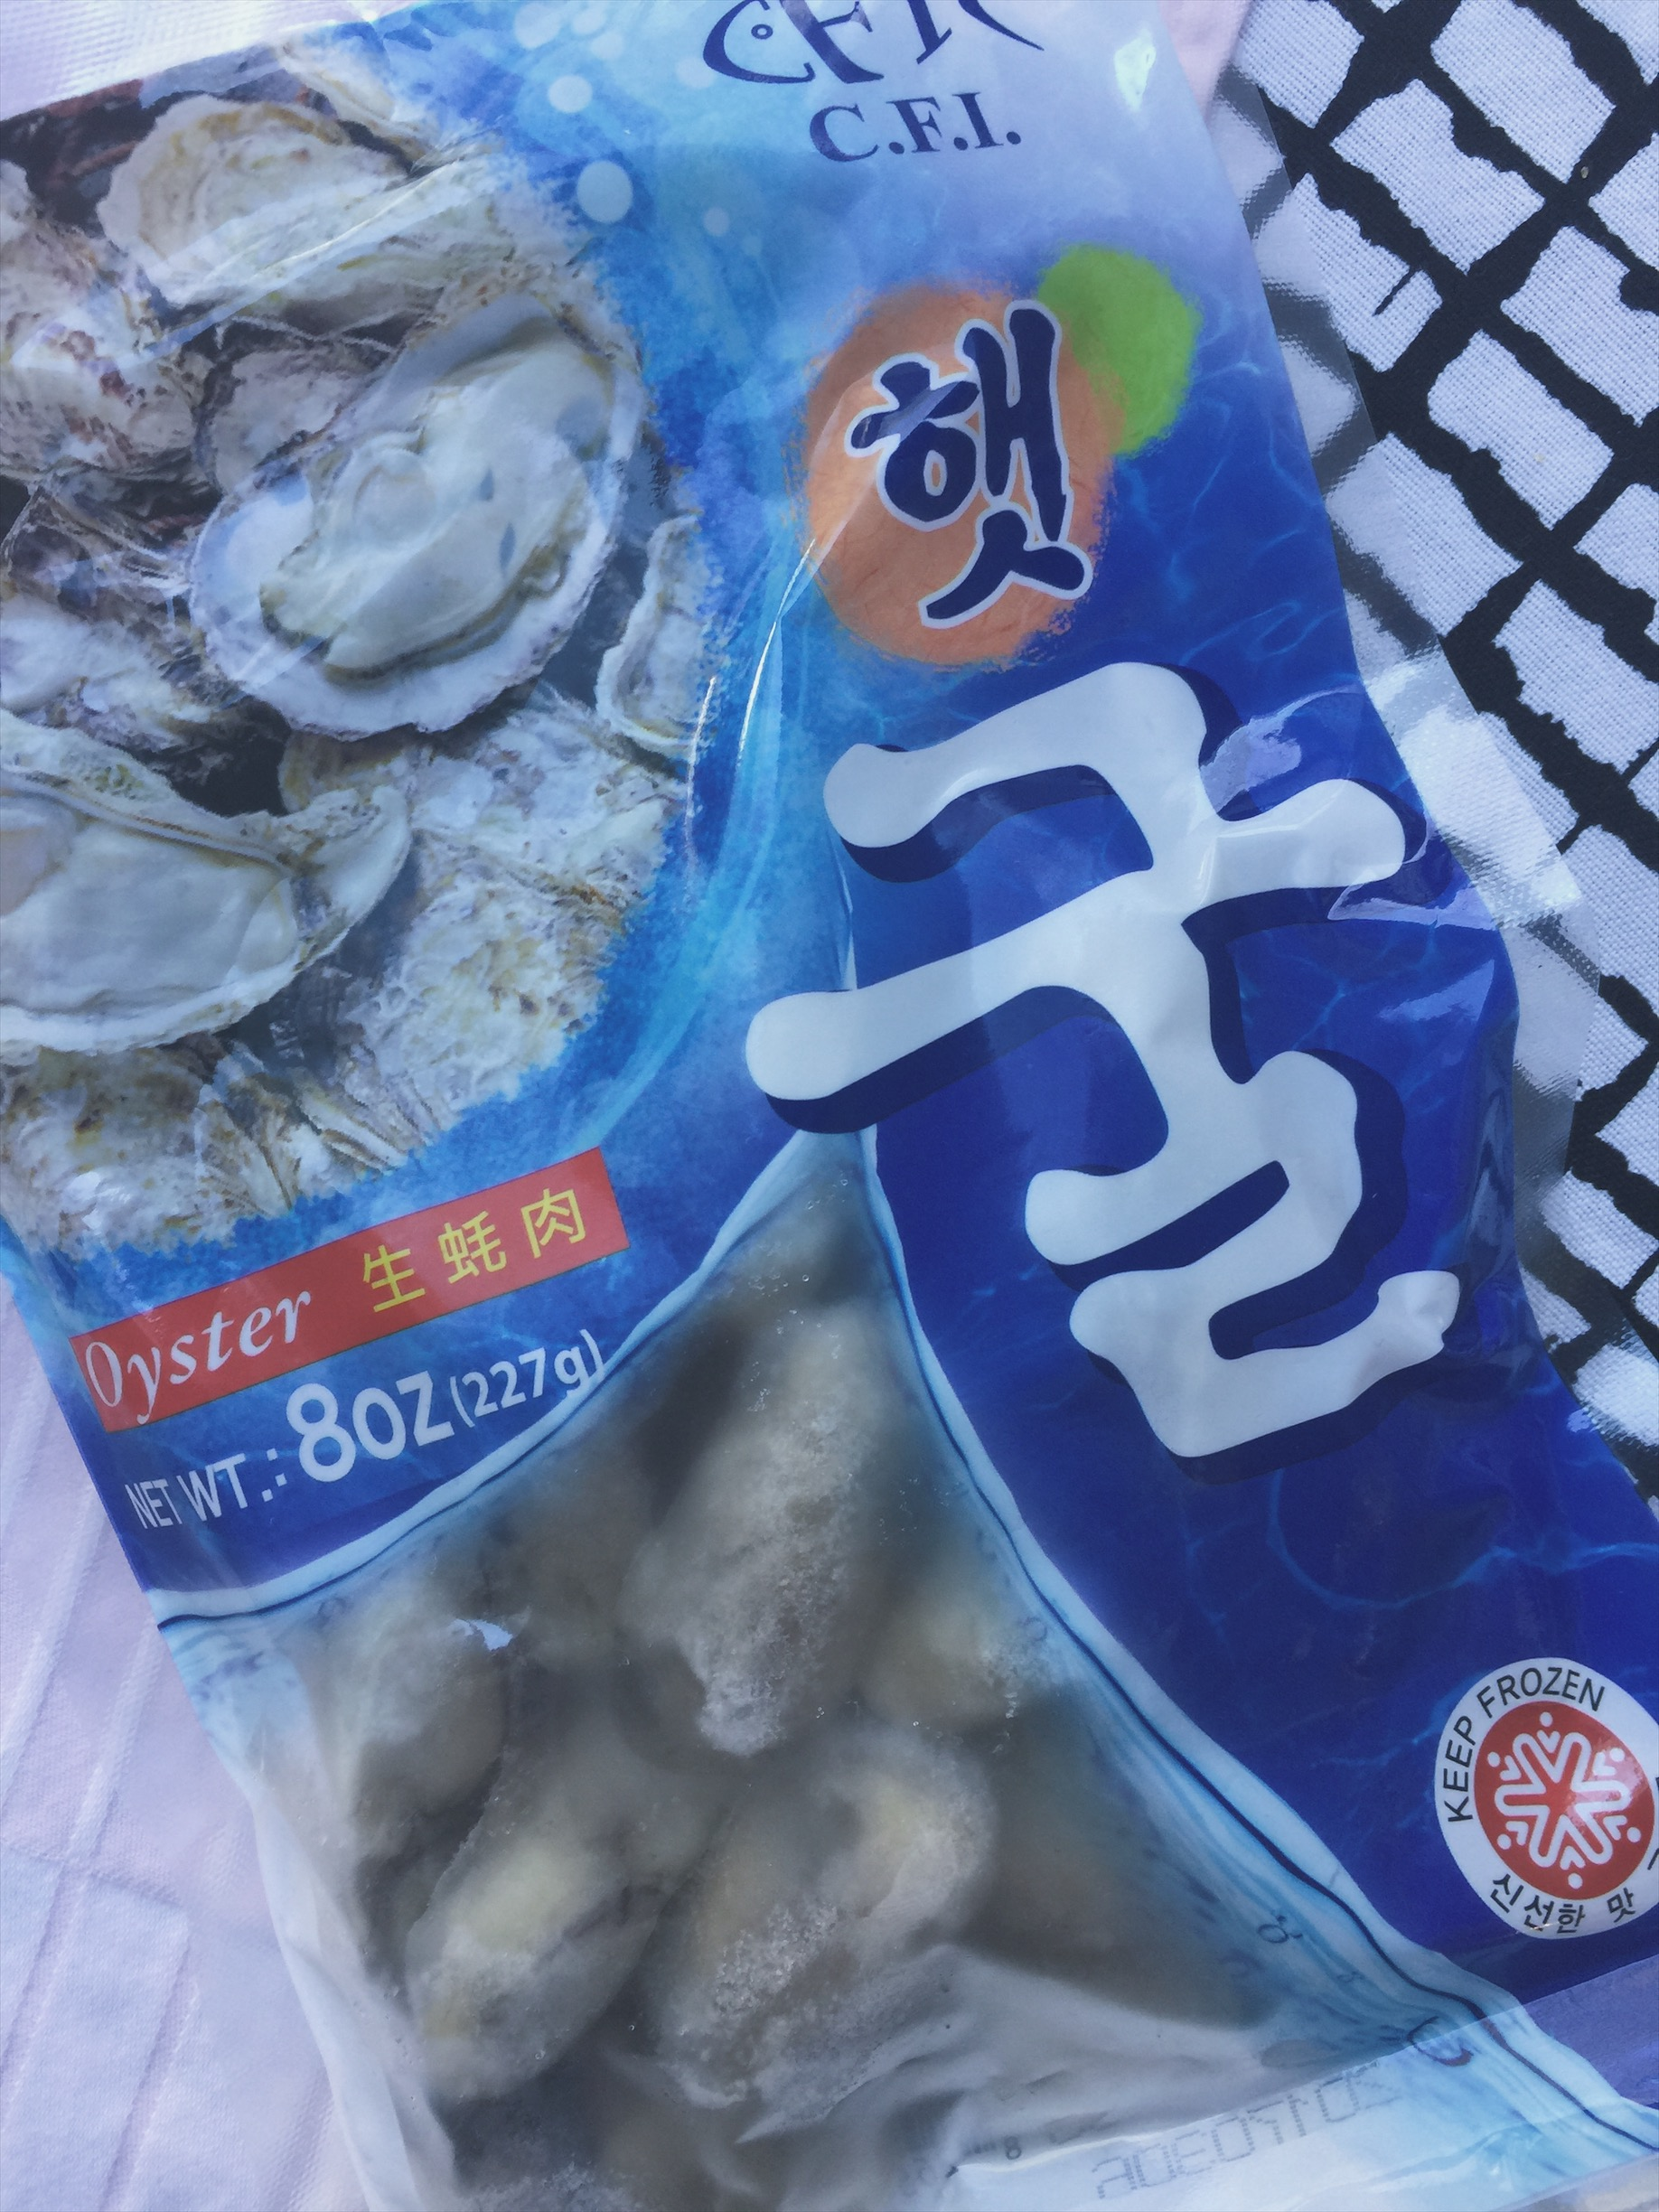 I use flash frozen oysters often since they are frozen right after capture and maintain great flavor and freshness.